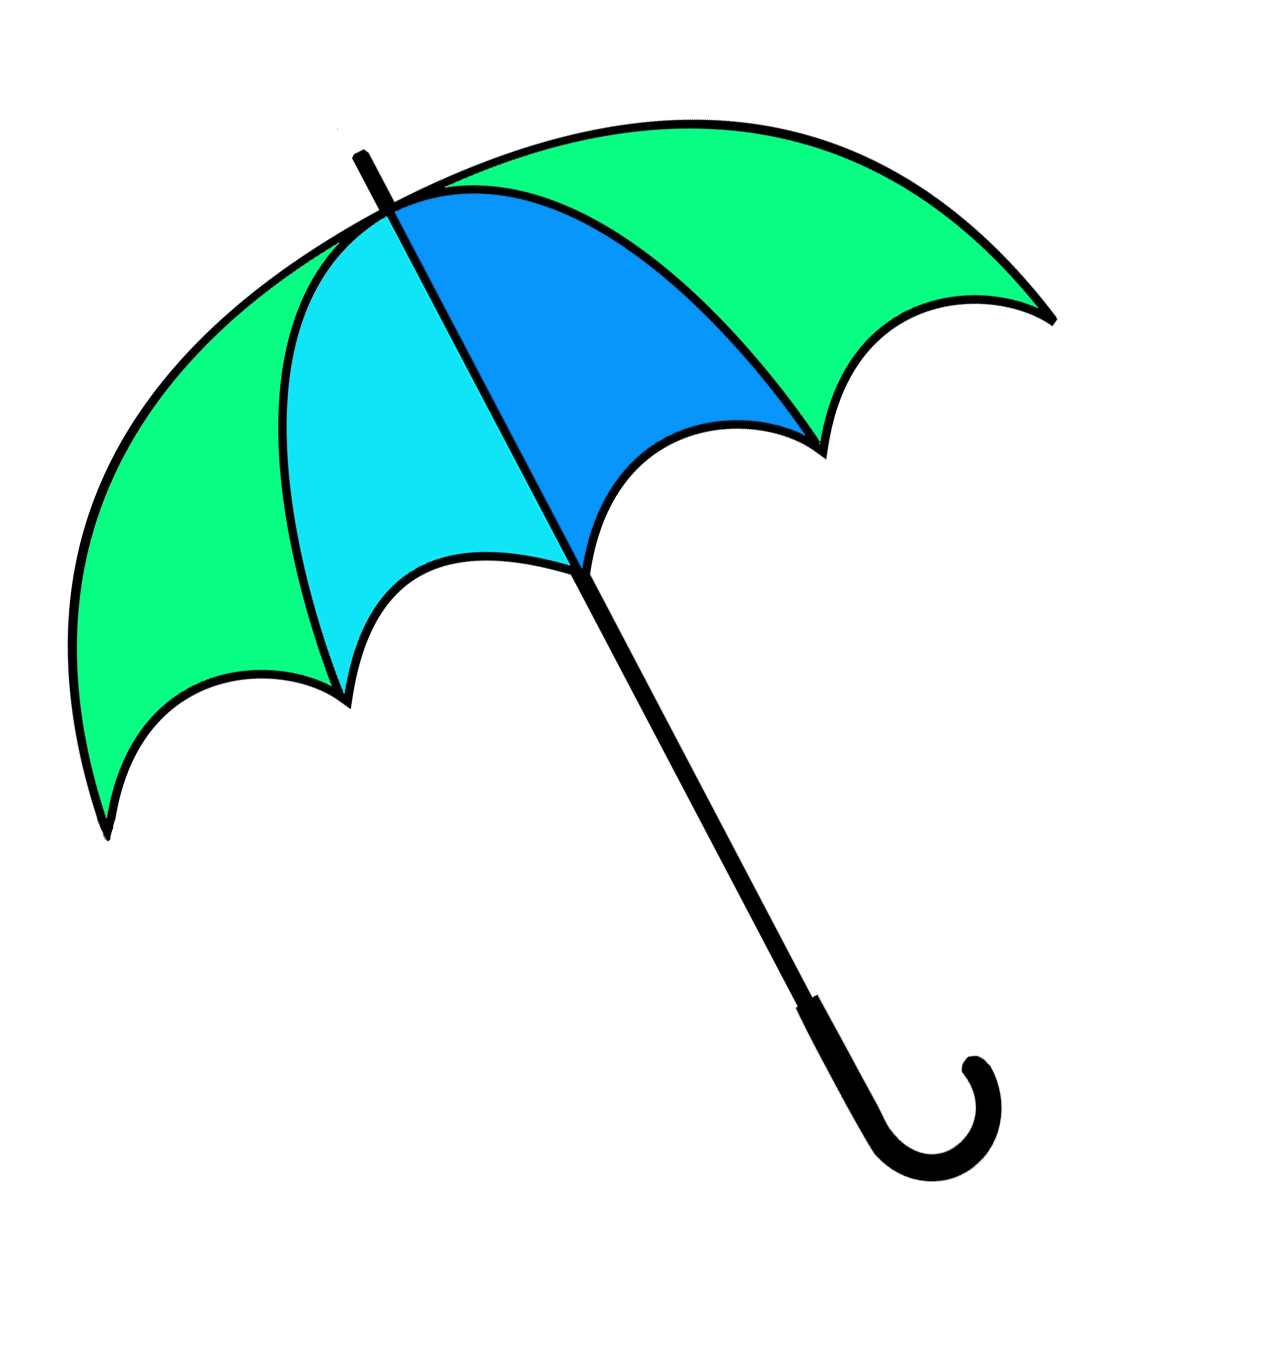 green and blue umbrella clipart